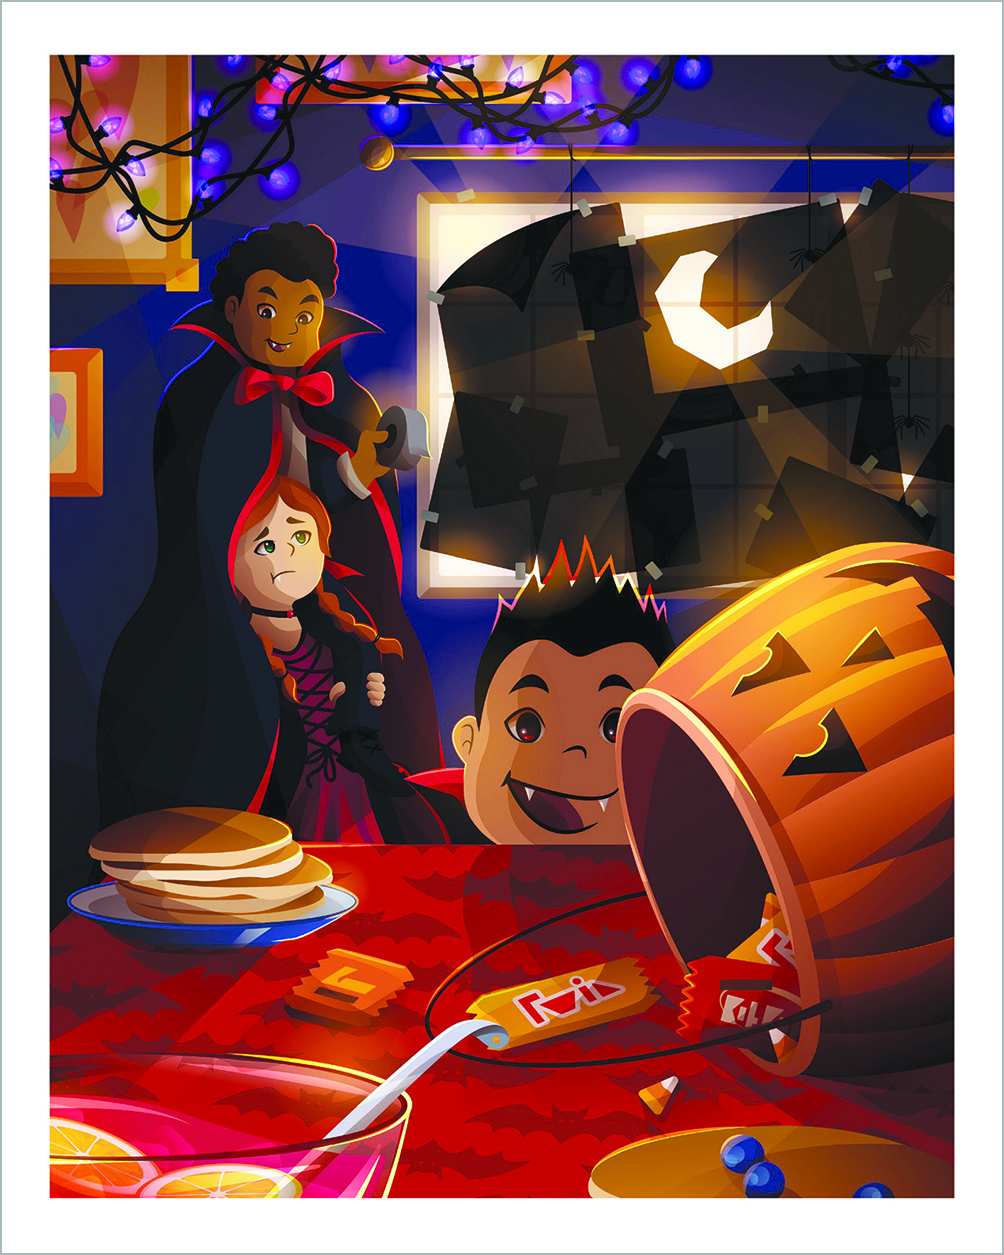 An illustration of kids in costumes around Halloween candy.